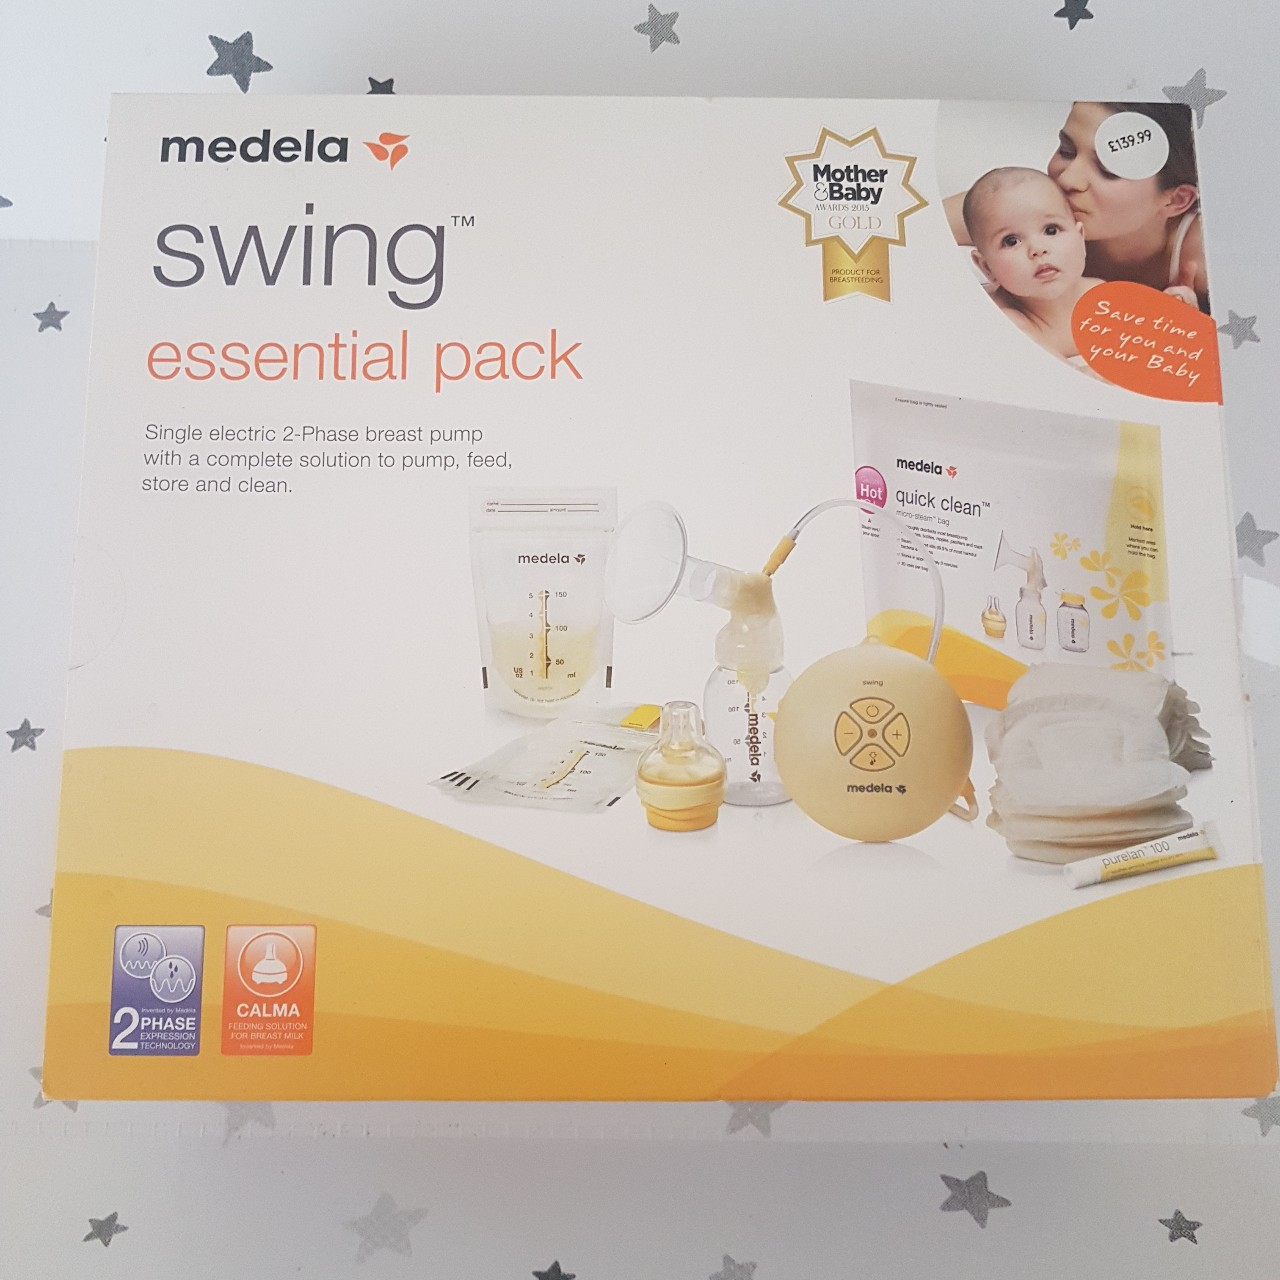 Medela Swing Single Electric 2 Phase Breast Pump Depop